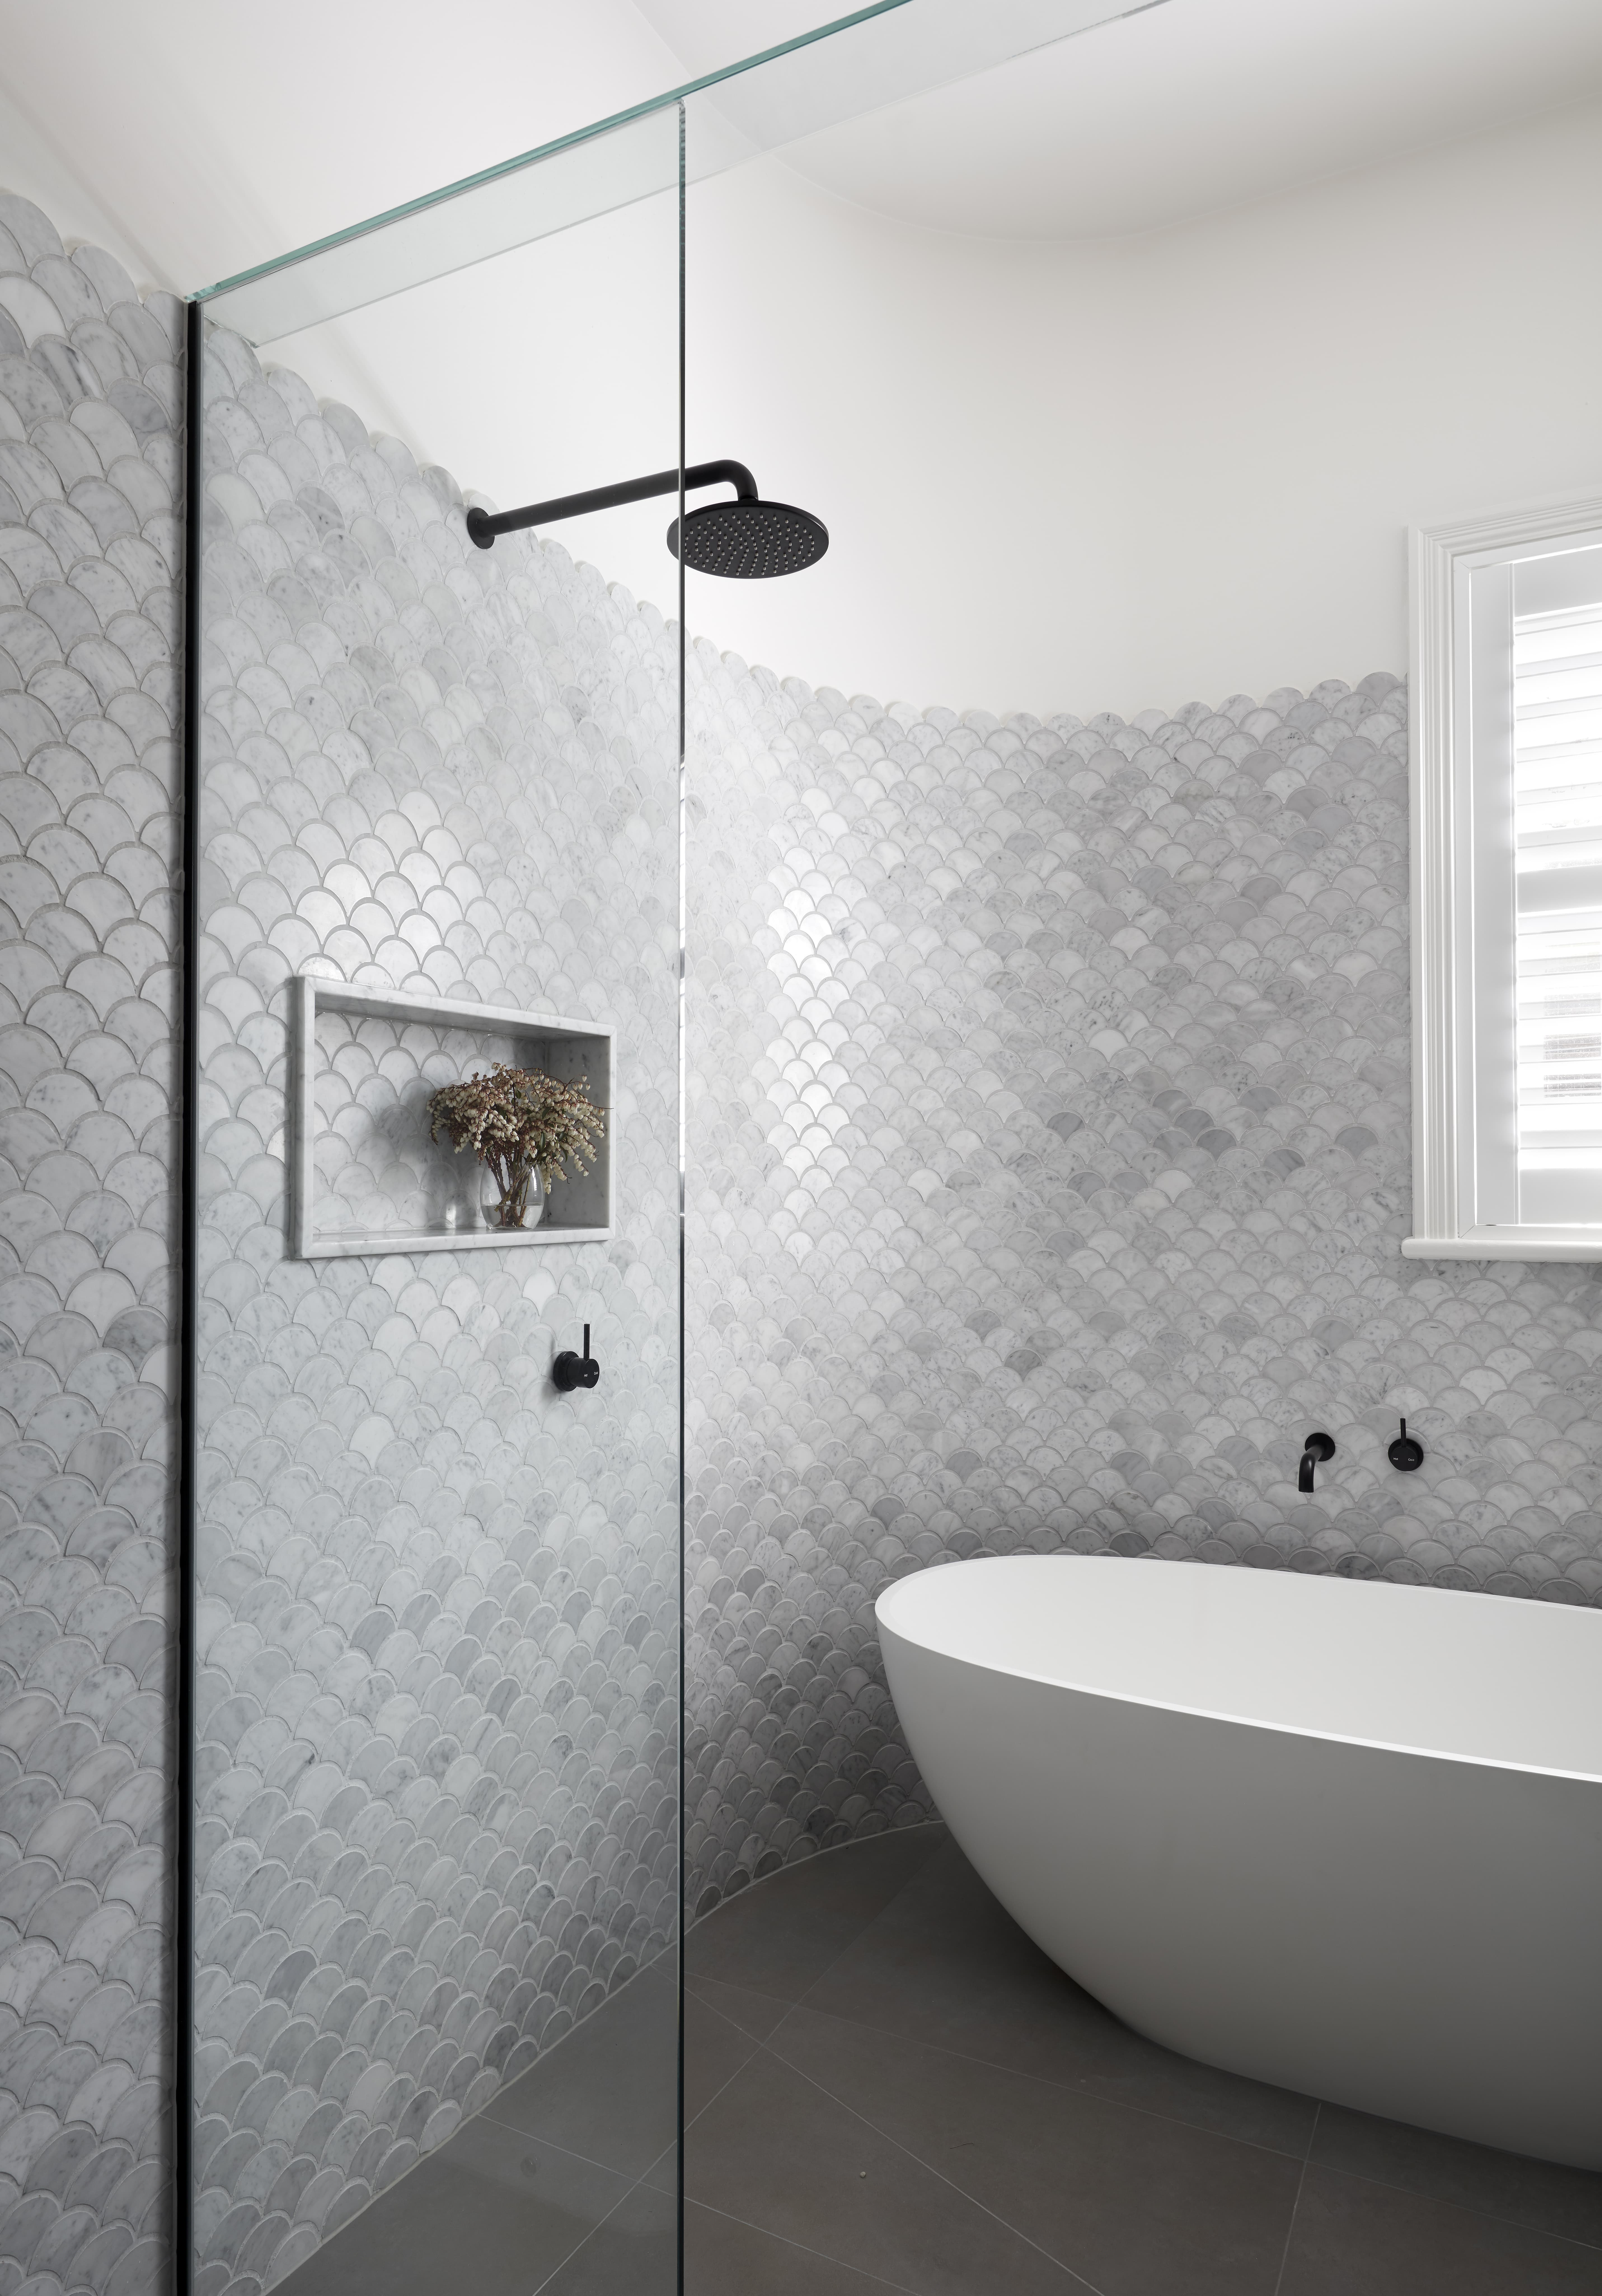 Gallery Of Malvern East Home By Smarter Bathrooms+ Local Design And Interiors Malvern East, Vic Image 4